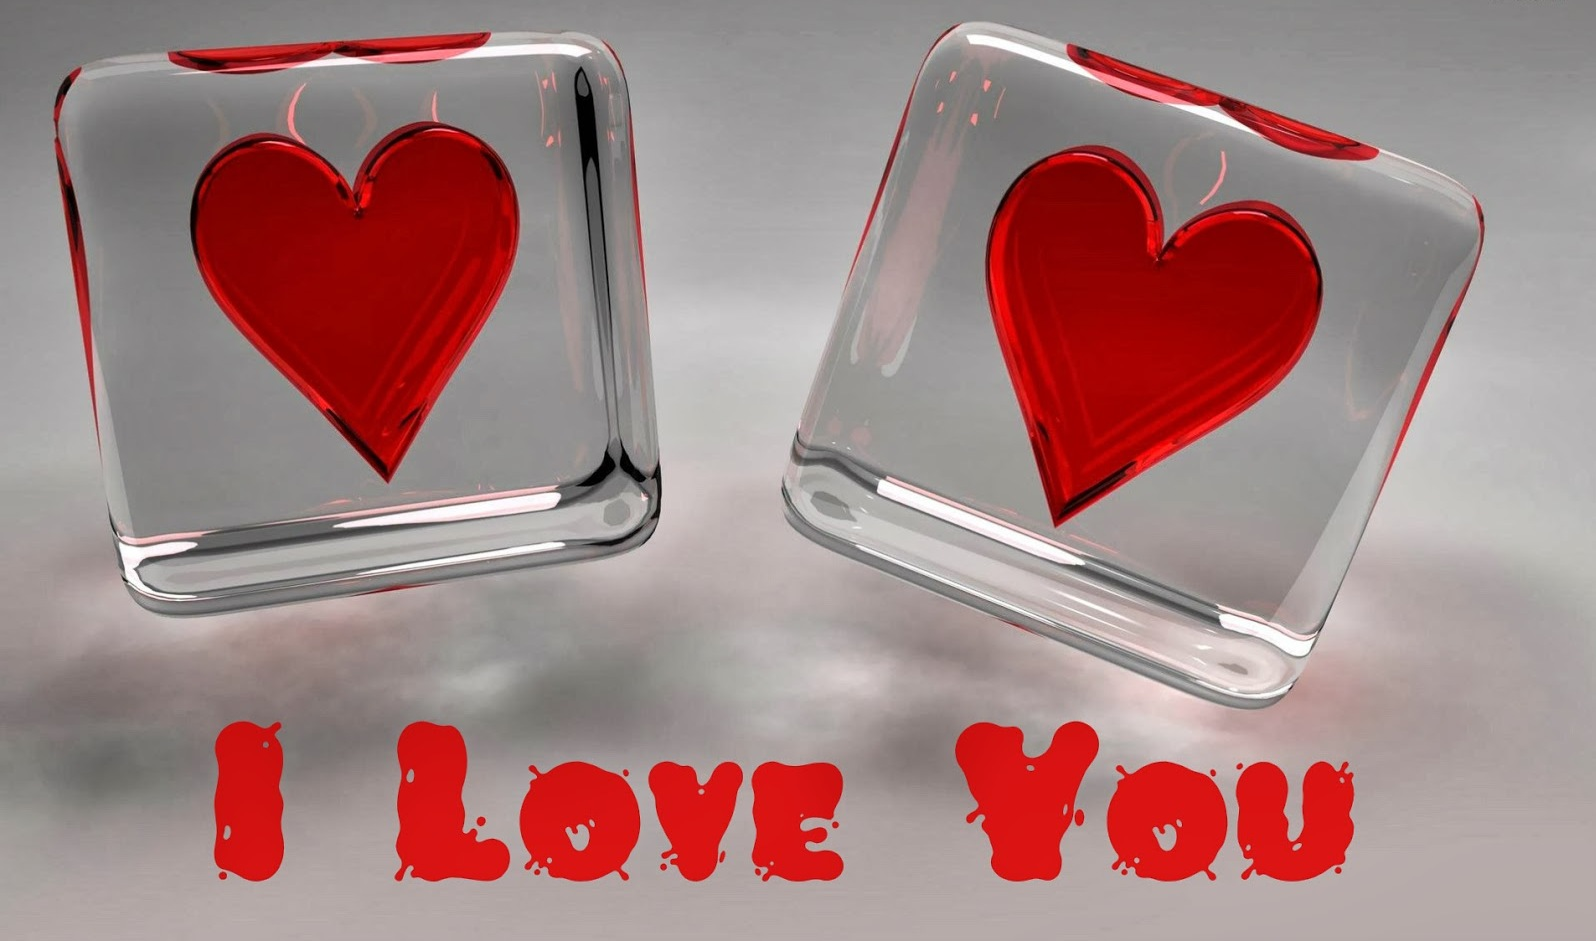 Valentines Day Card Reasons Why I Love You Hd Desktop Wallpaper